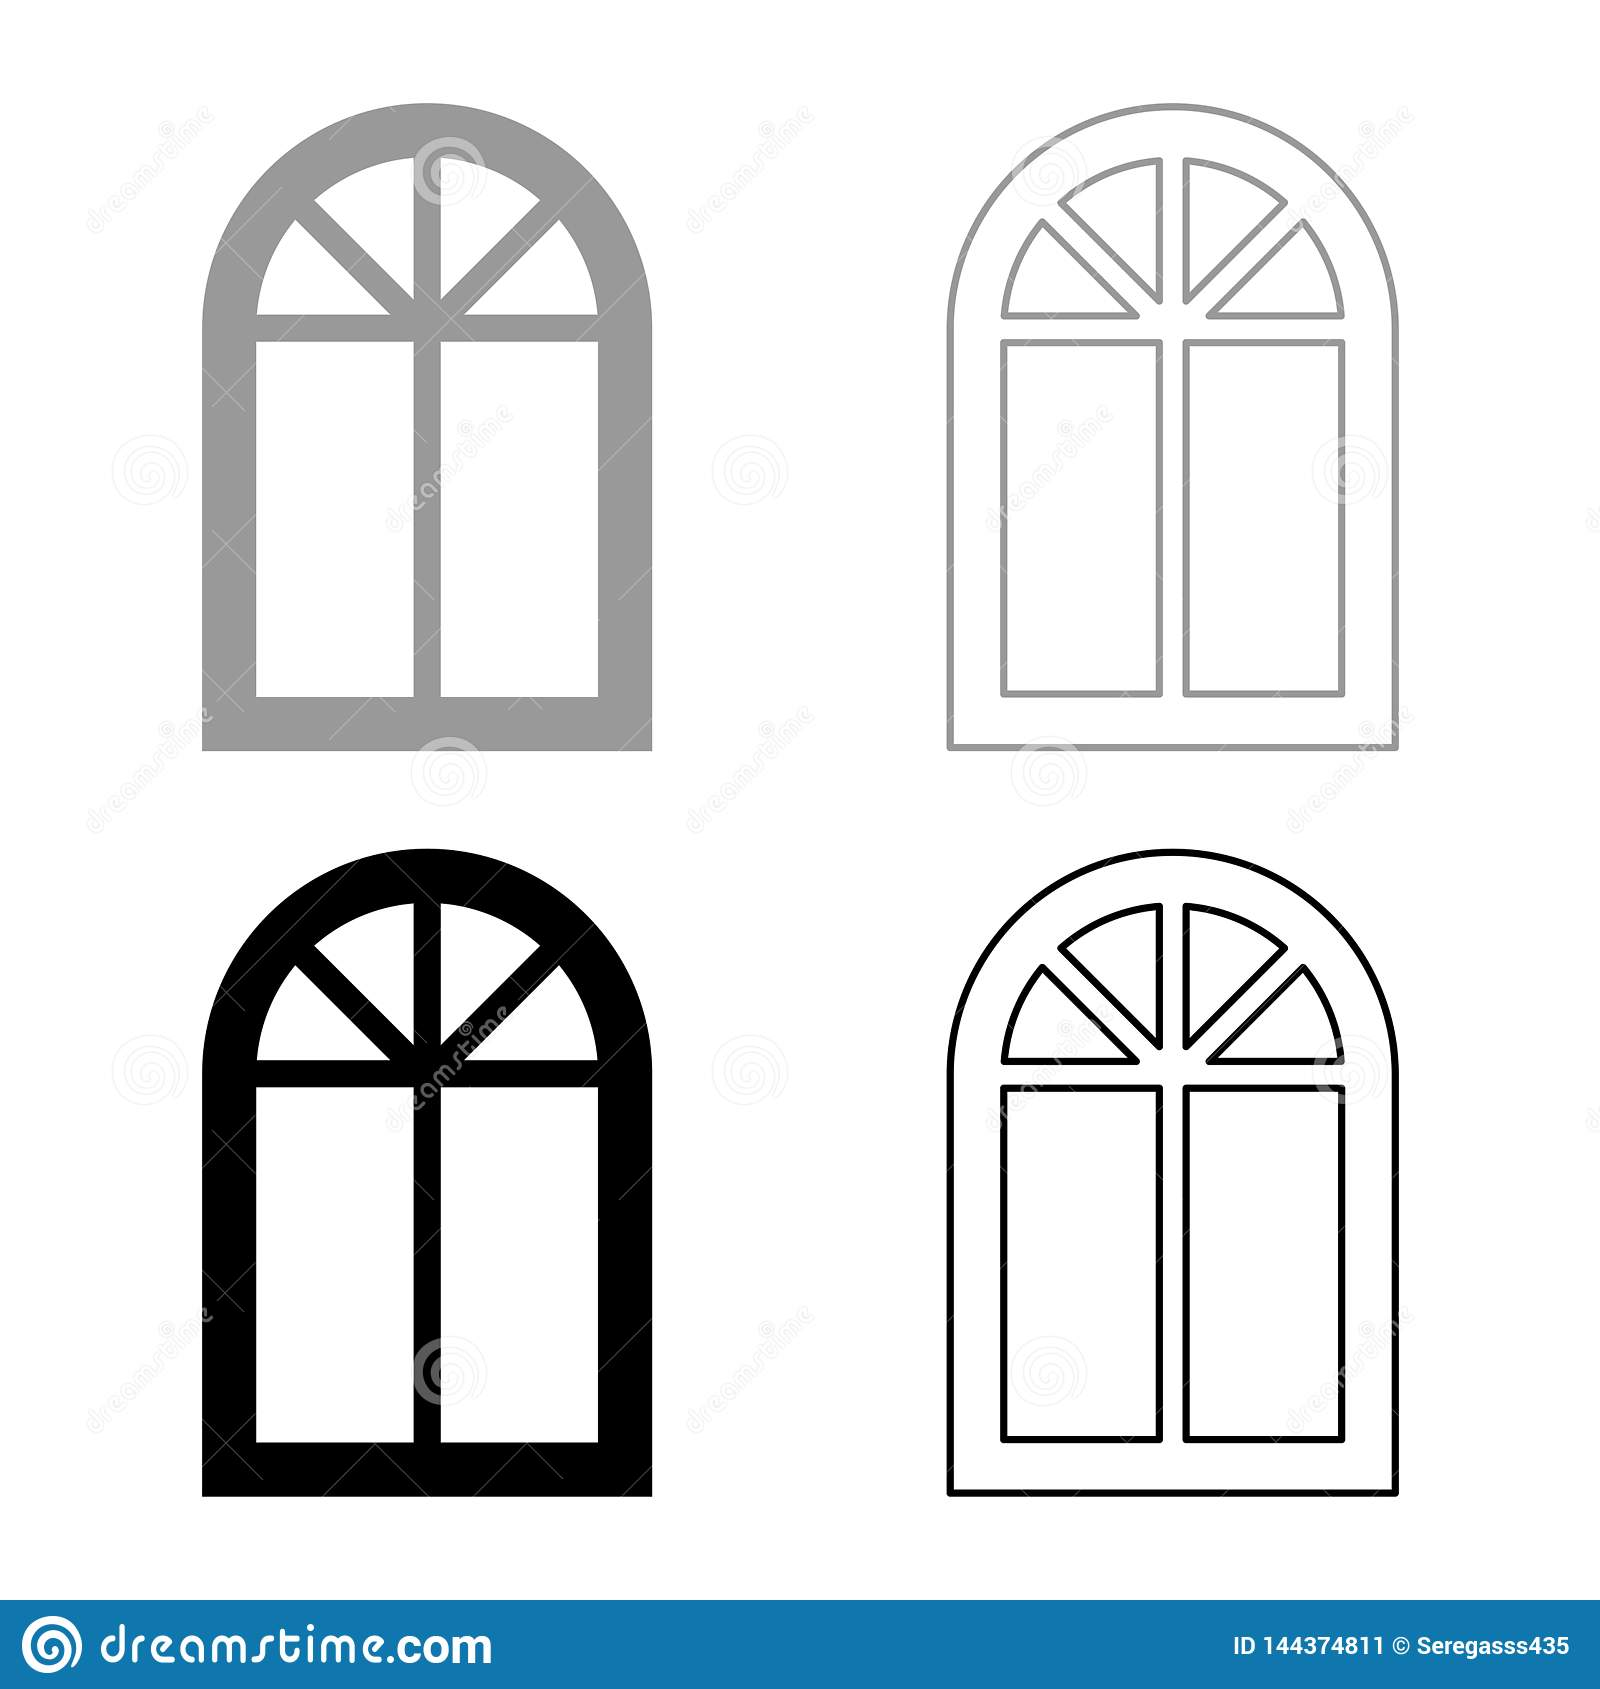 Window frame semi-round at the top Arch window icon set black color vector illustration flat style image